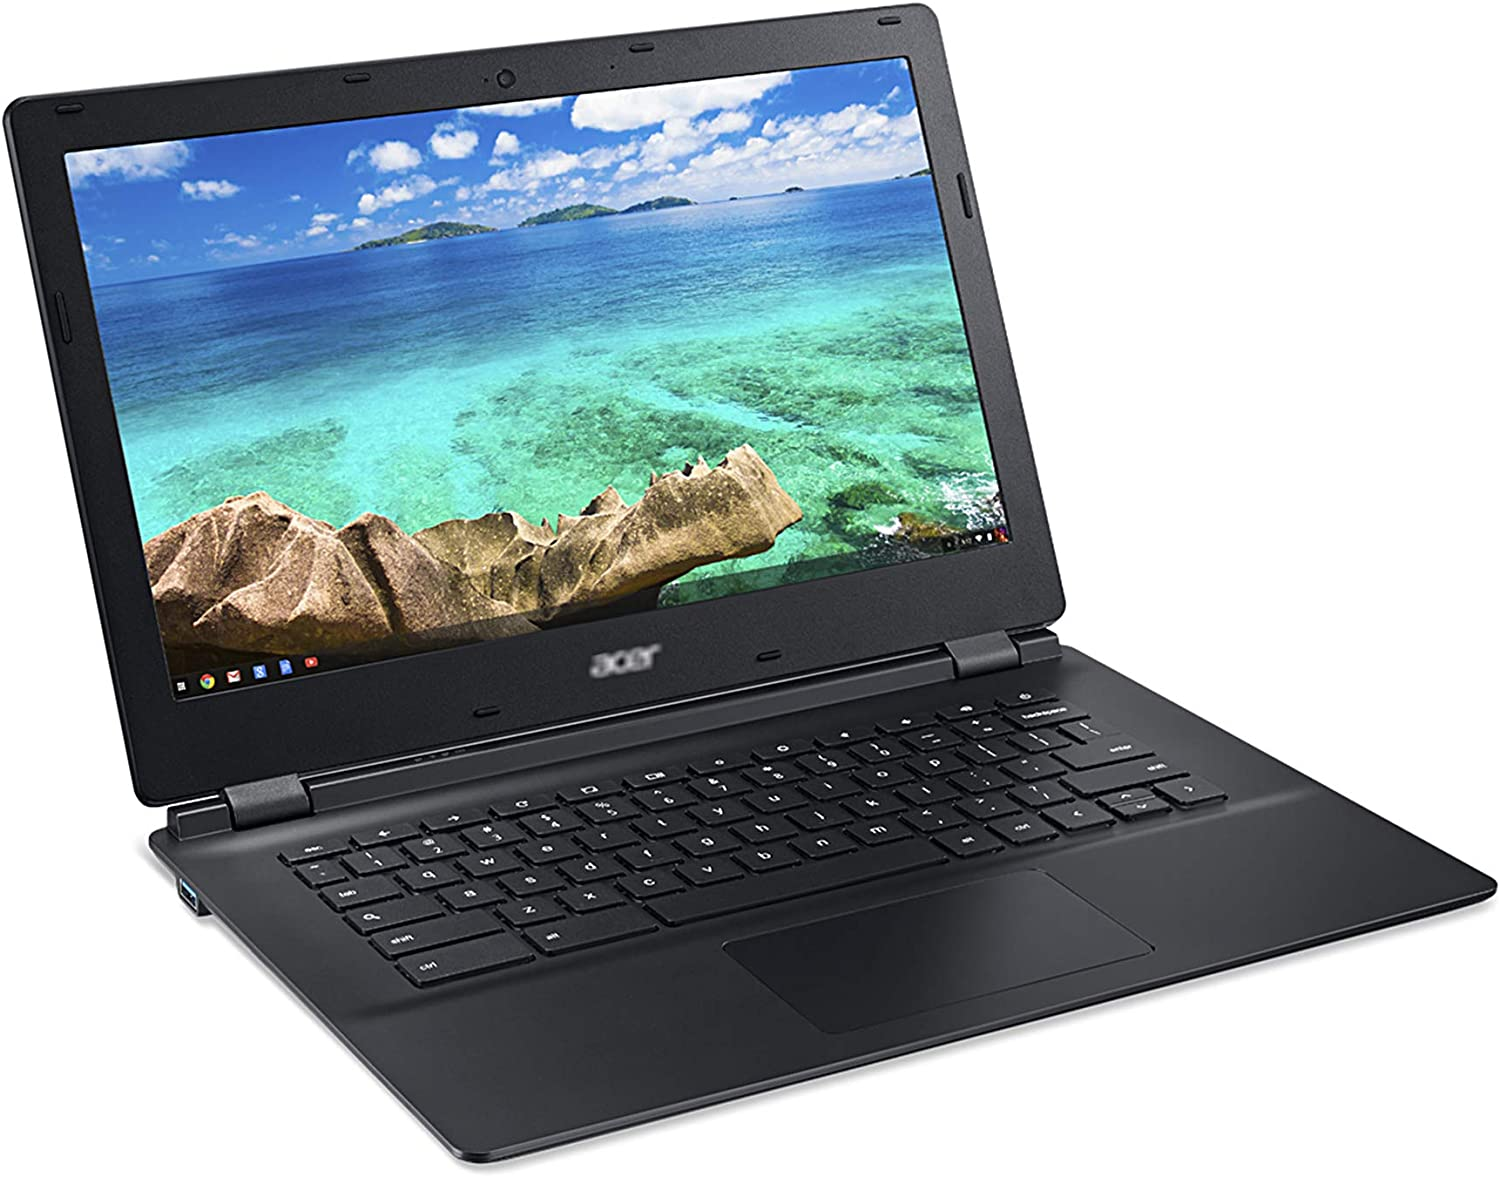 Used Chromebook Laptop 13 C810 NVI Dia Tegra K1 CD570M-A1 2.1GHz, 4GB RAM 16 GB SSD (with Top Cover) Education and Study Computer 13.3-Inch WiFi, HDMI, Chrome OS